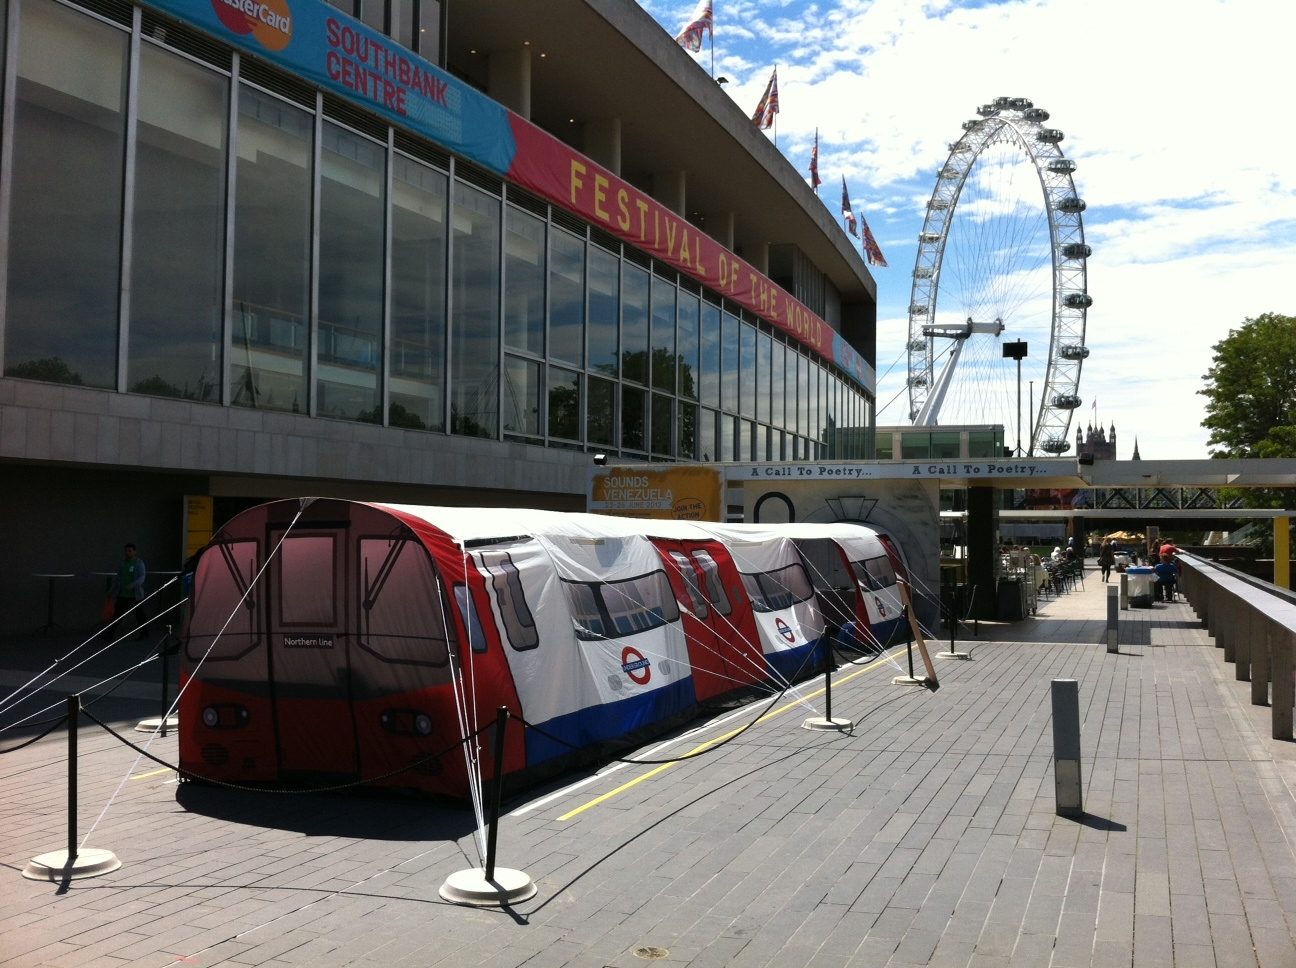 Attached Images & Underground Tube Tent on Brighton Seafront